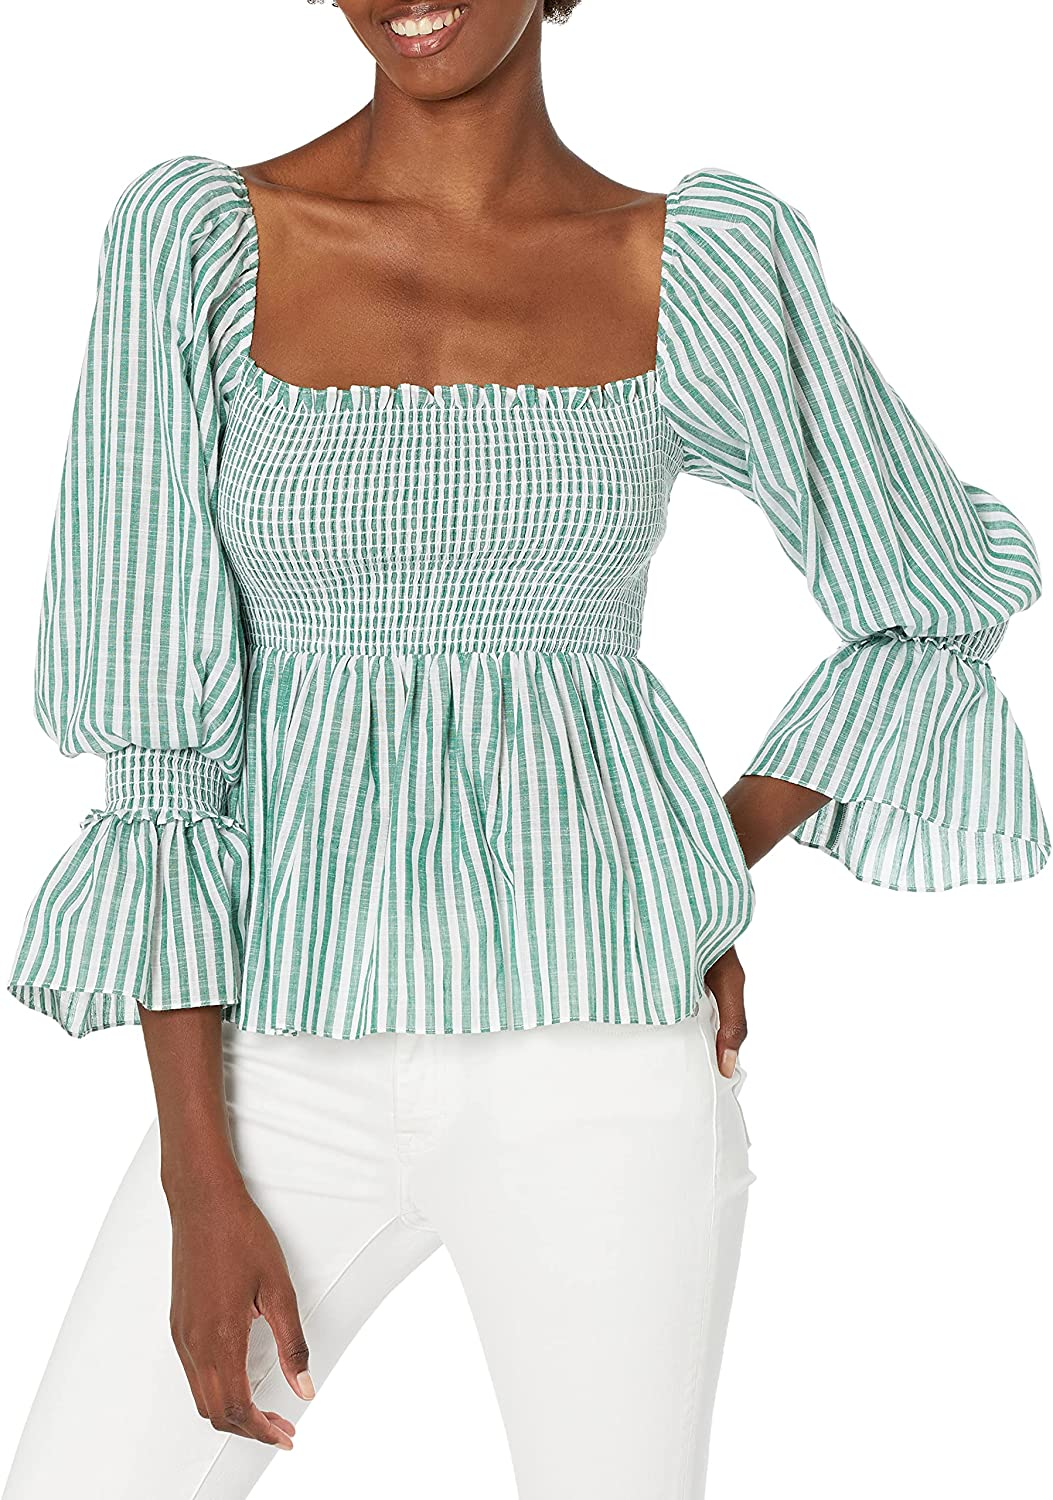 Popular brand Cinq a Sept Gifts Women's Top Adly